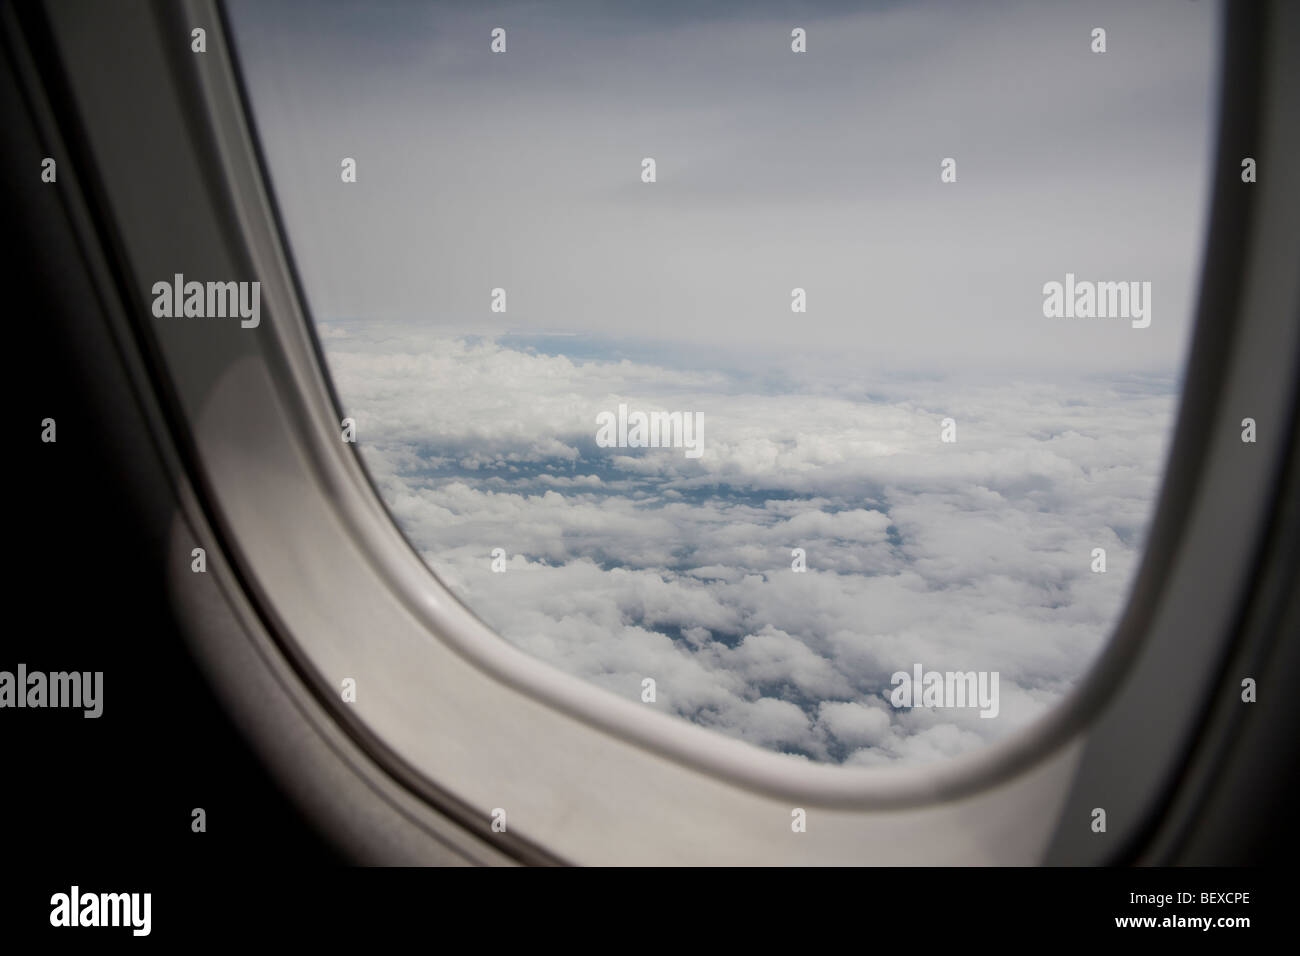 View out an airplane window. - Stock Image